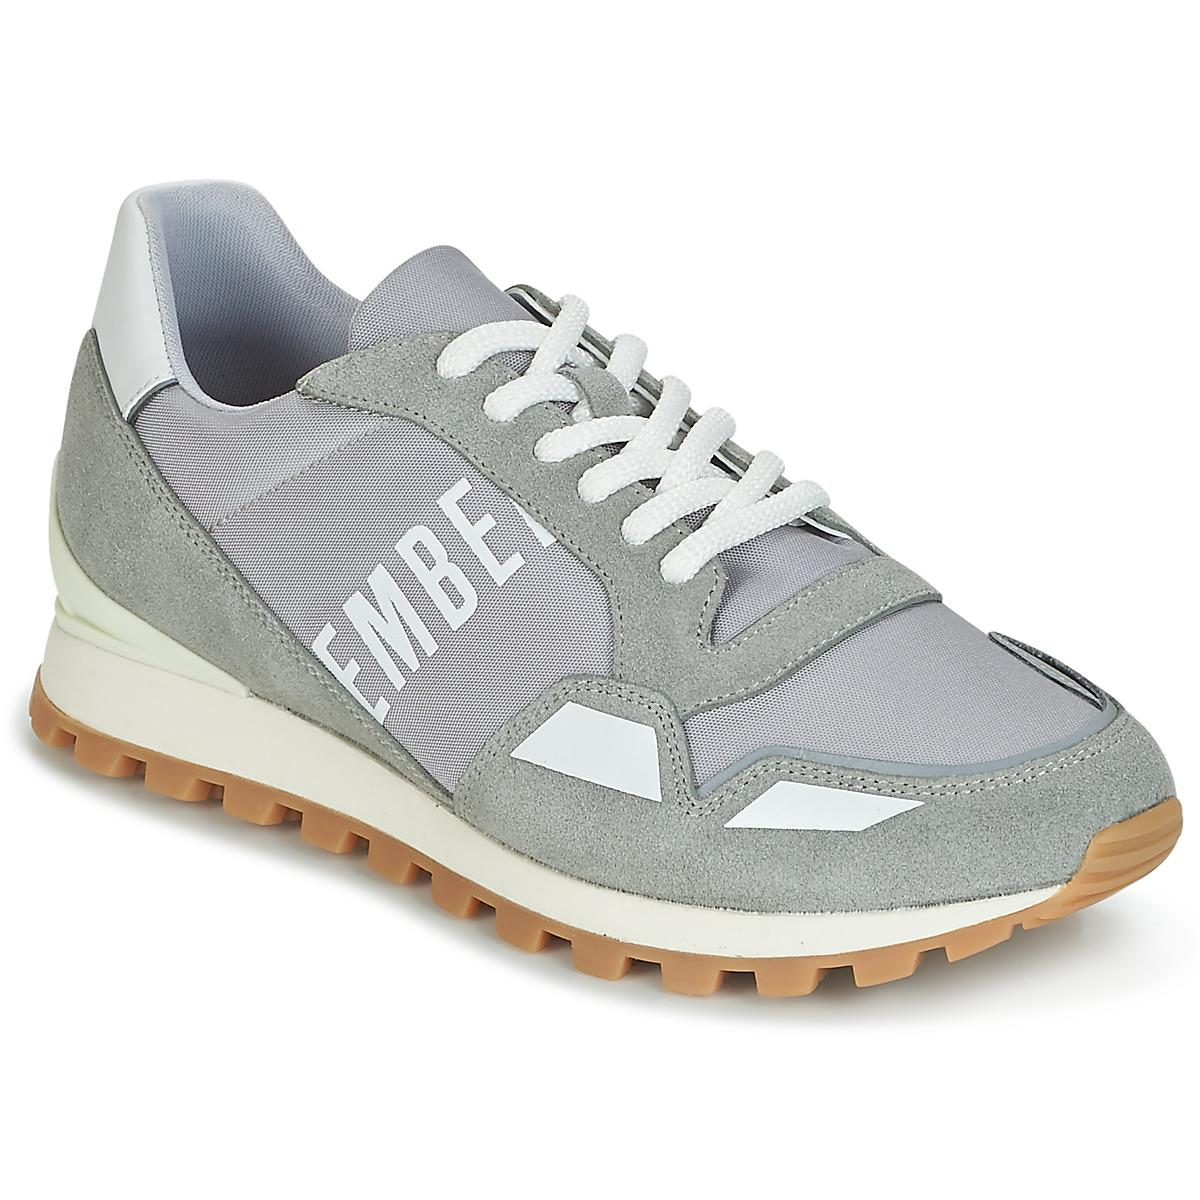 Bikkembergs Fend-er 2086 Shoes (trainers) in Grey (Grey)